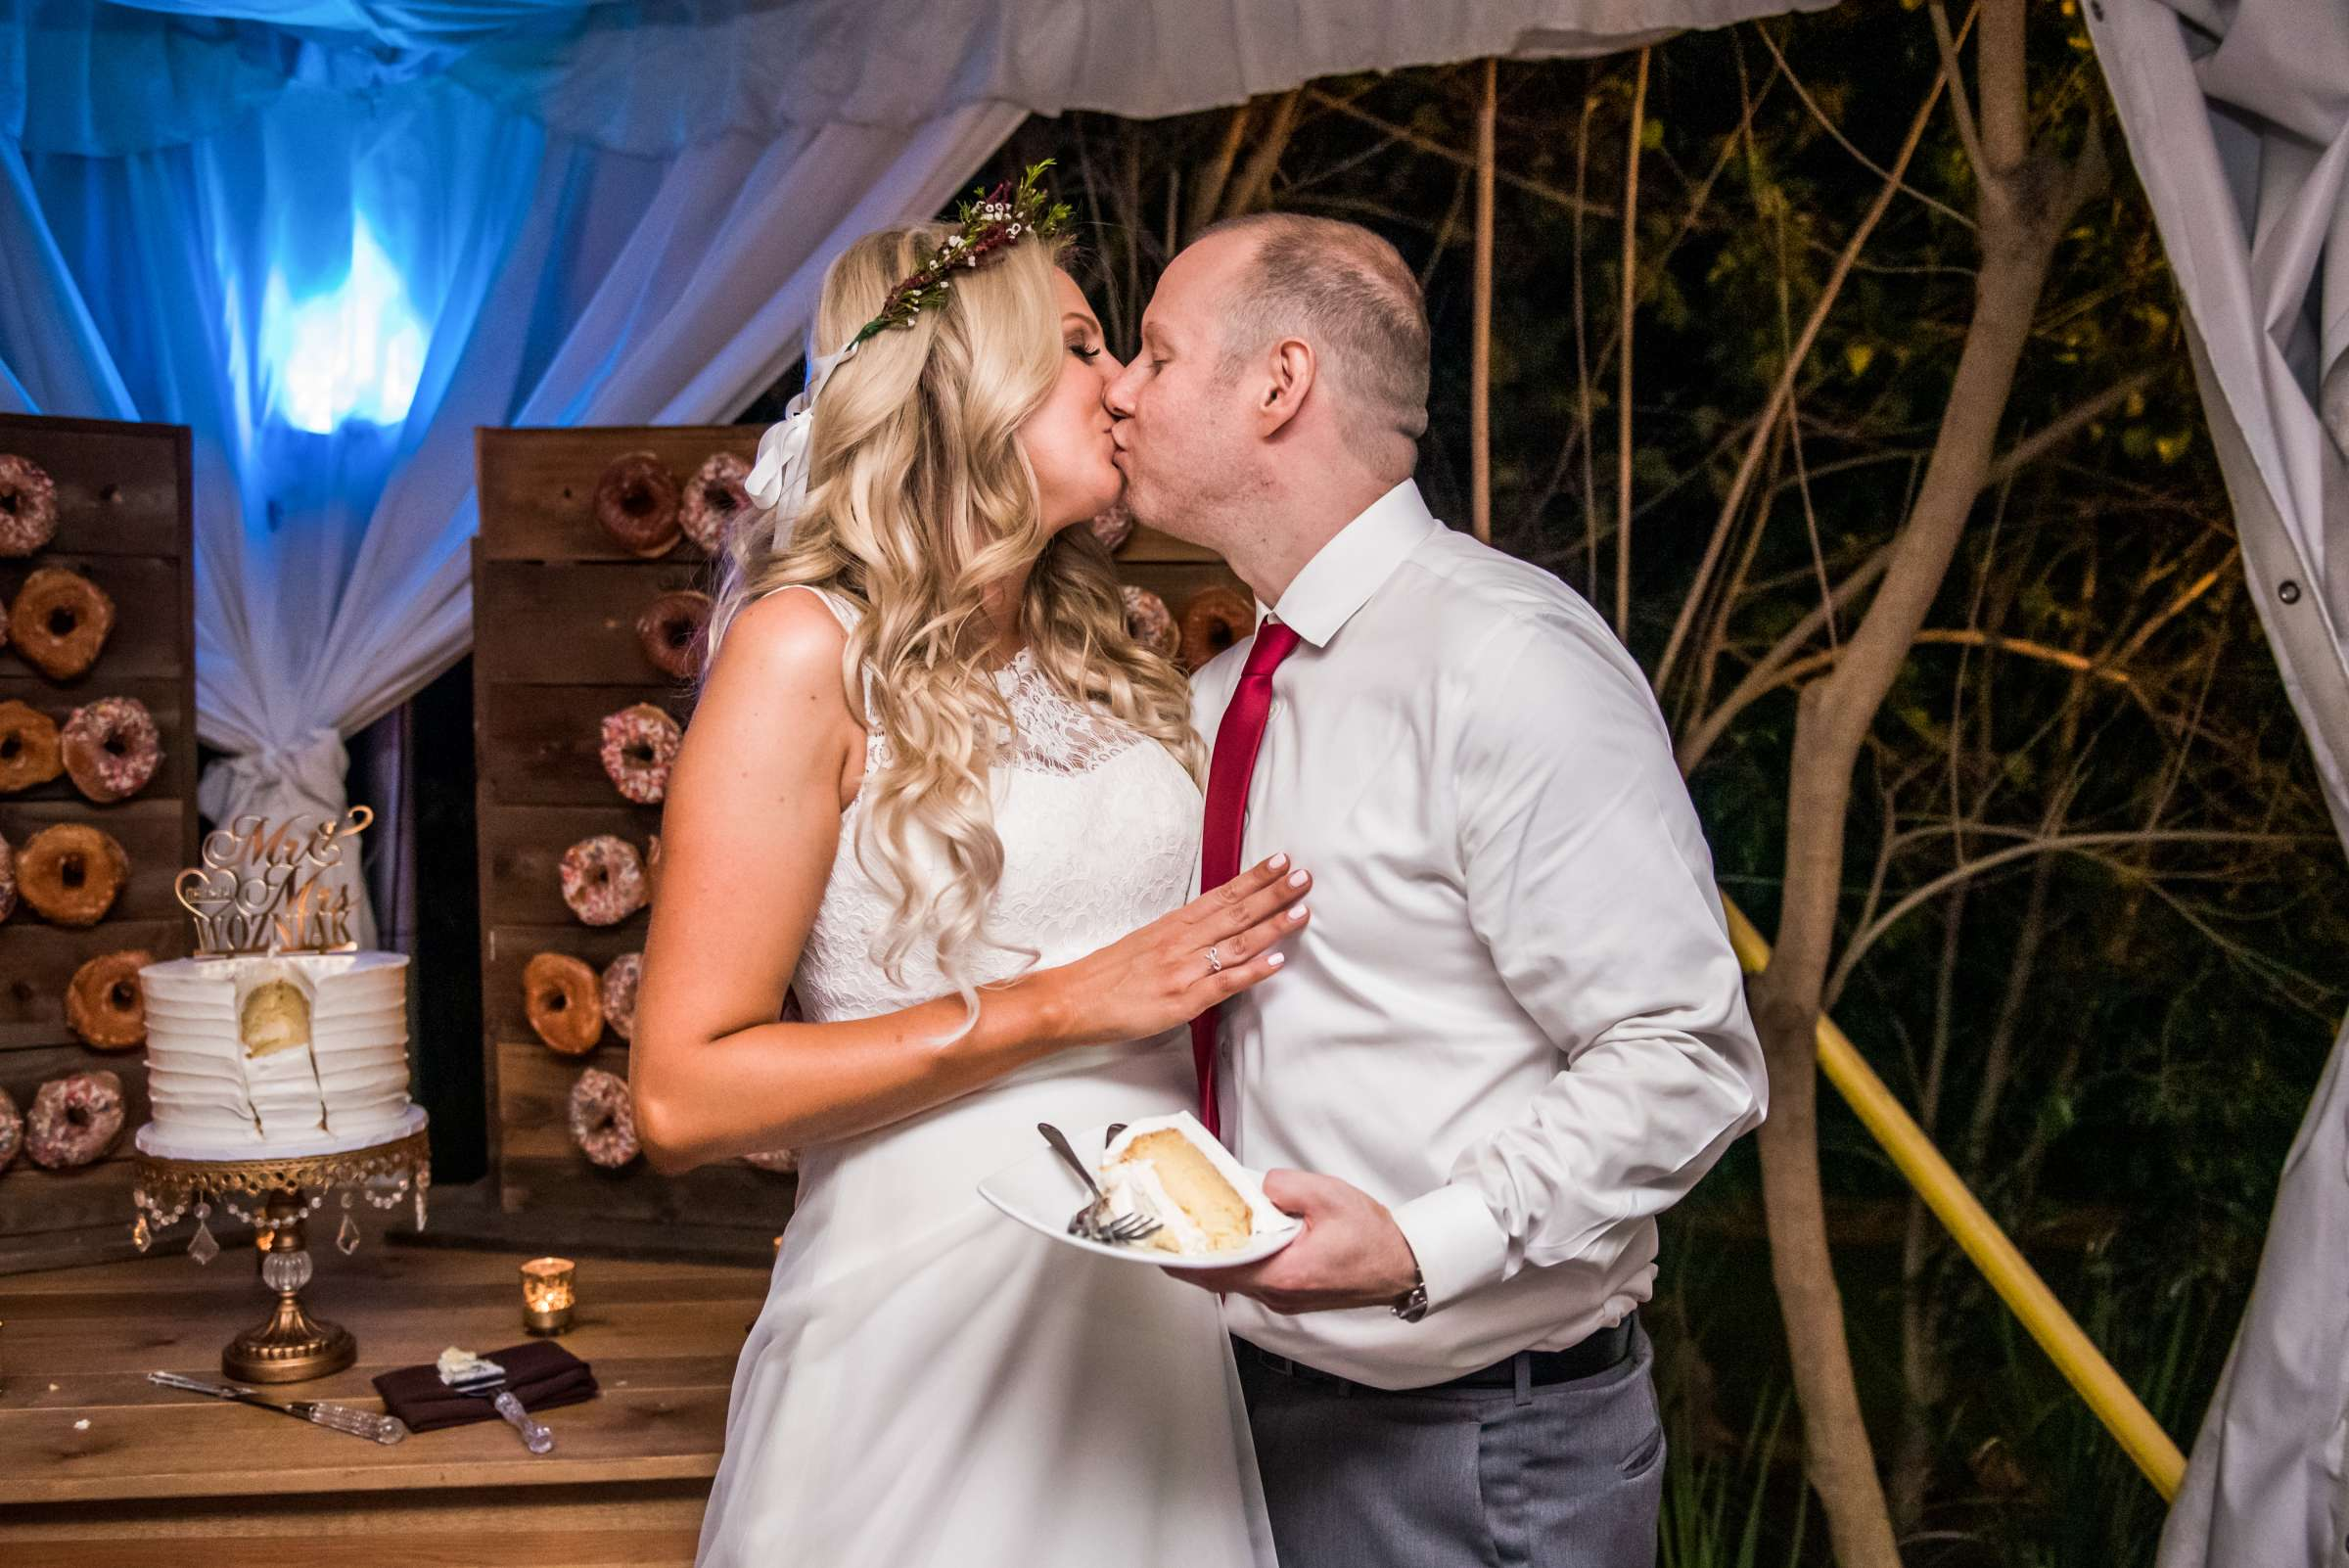 Twin Oaks House & Gardens Wedding Estate Wedding, Brittany and Sean Wedding Photo #141 by True Photography